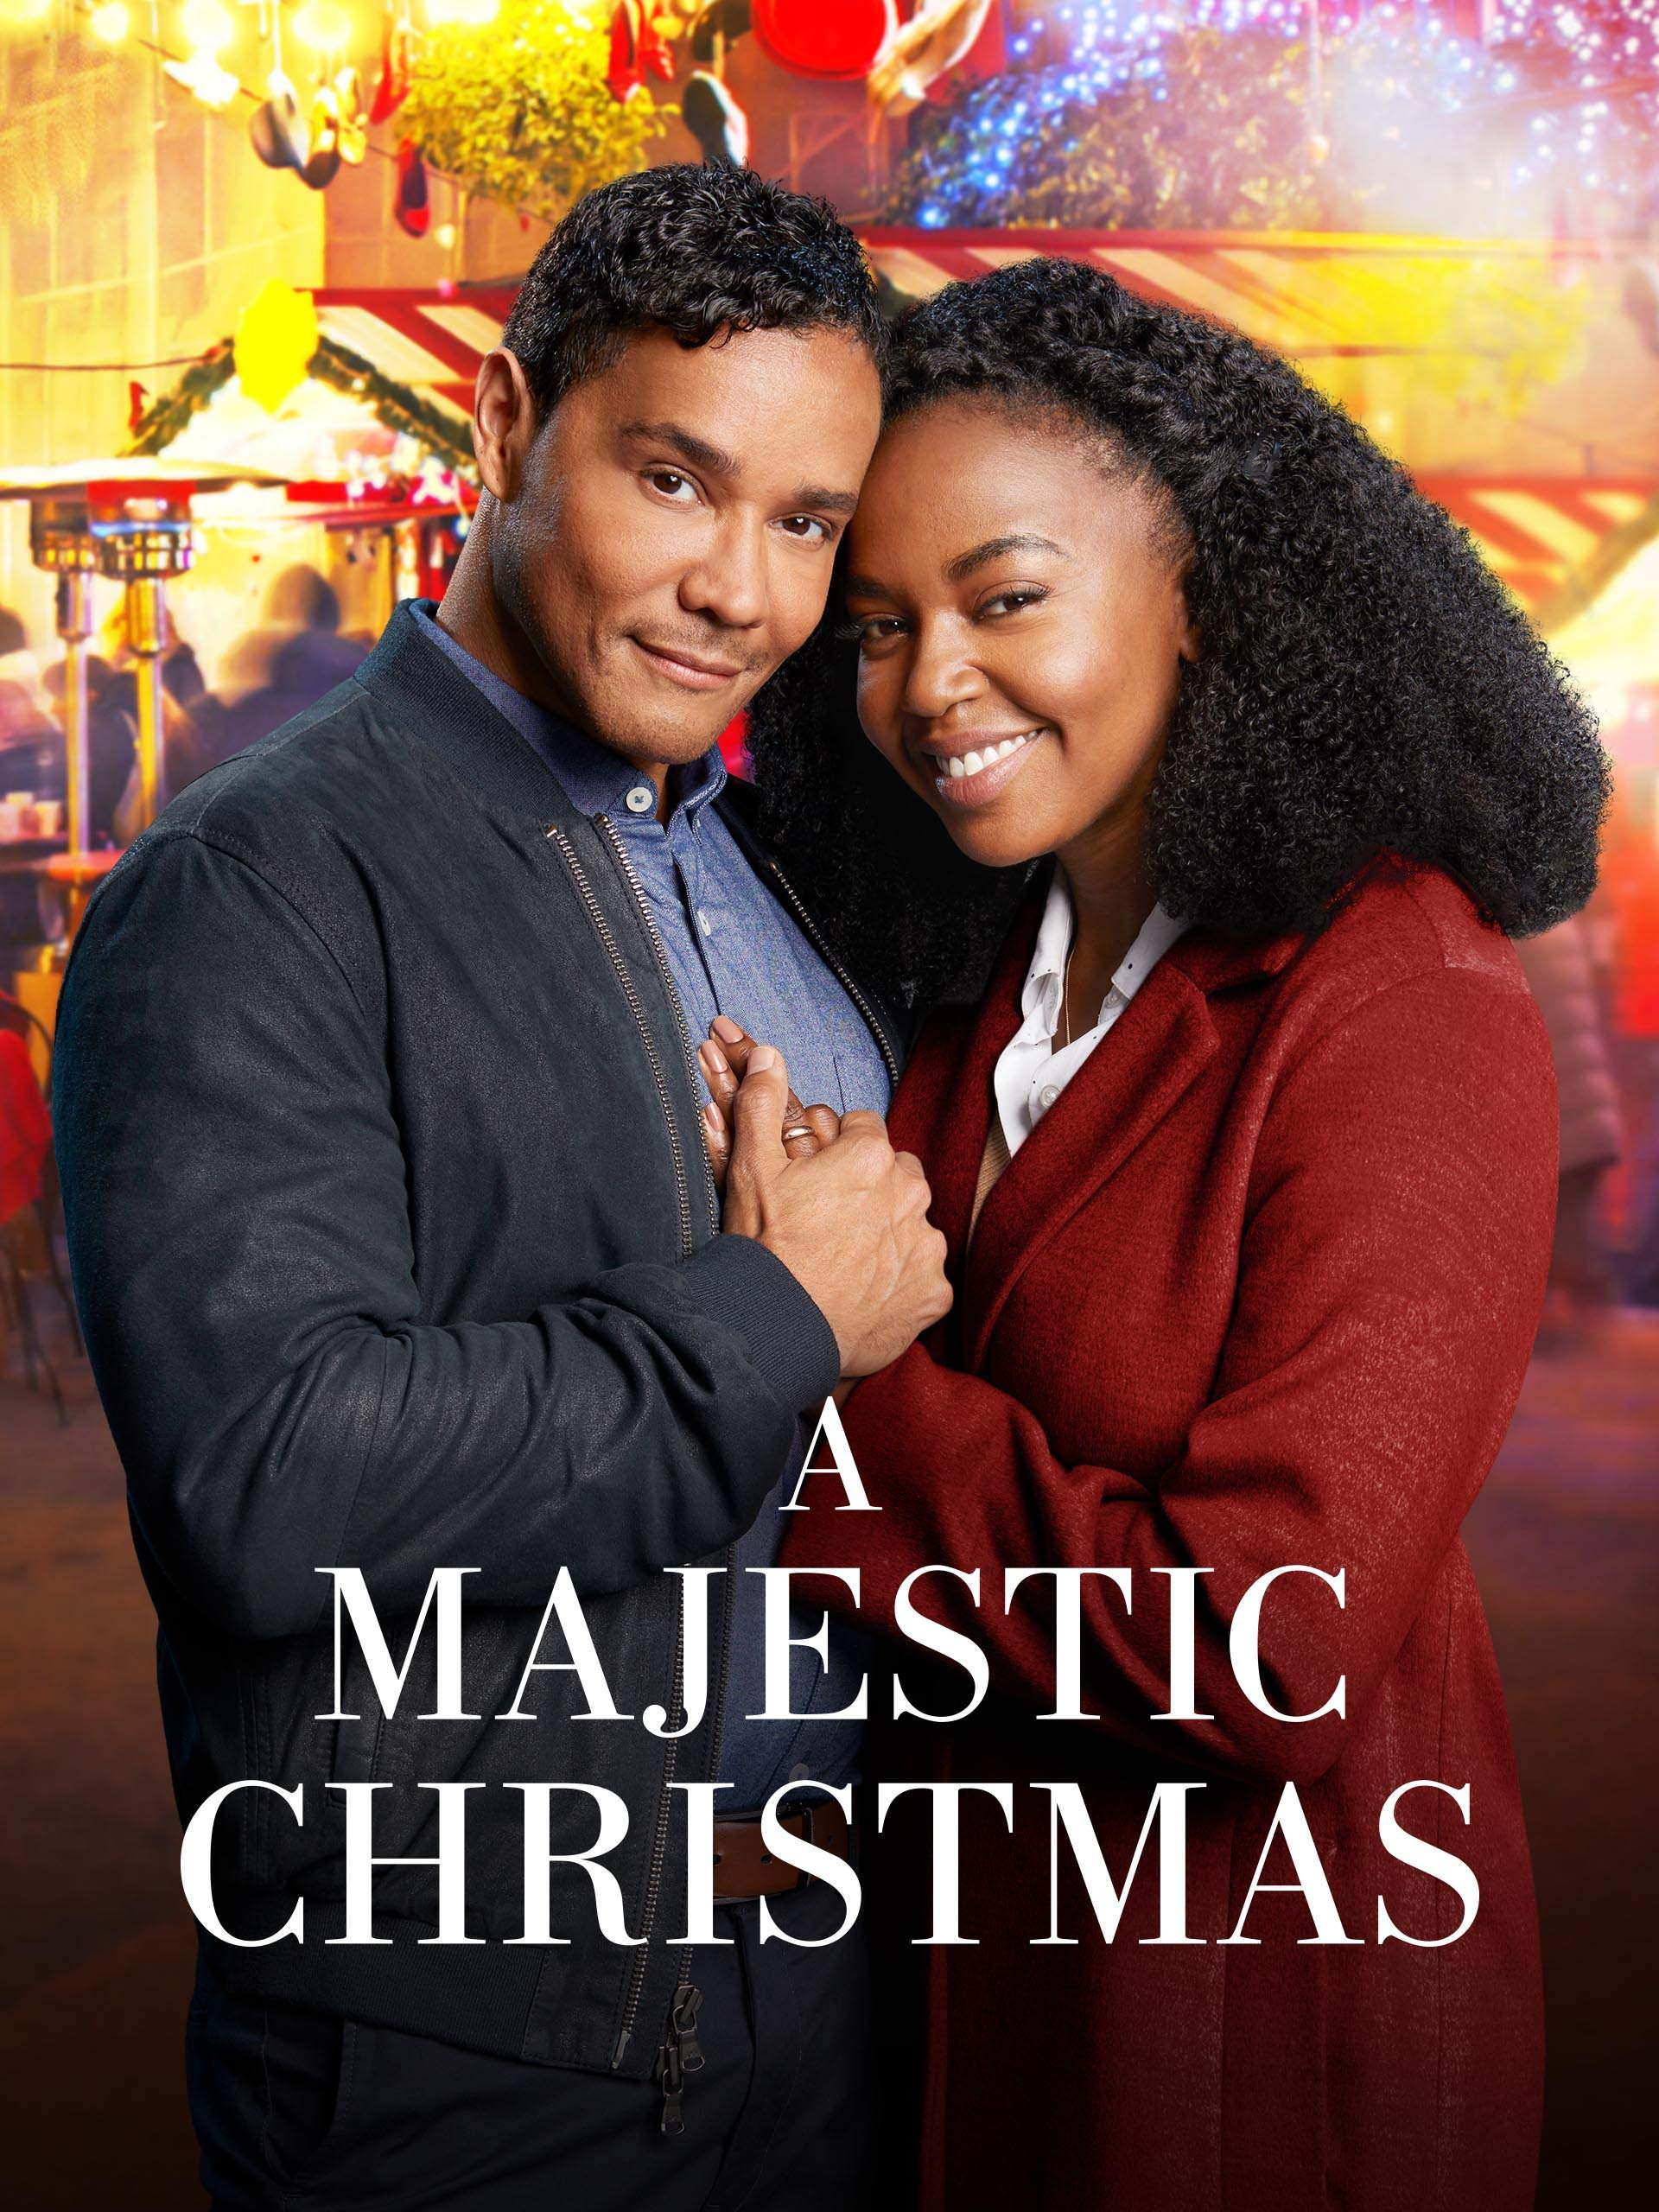 Majestic Christmas.Amazon Com A Majestic Christmas Pat Kiely